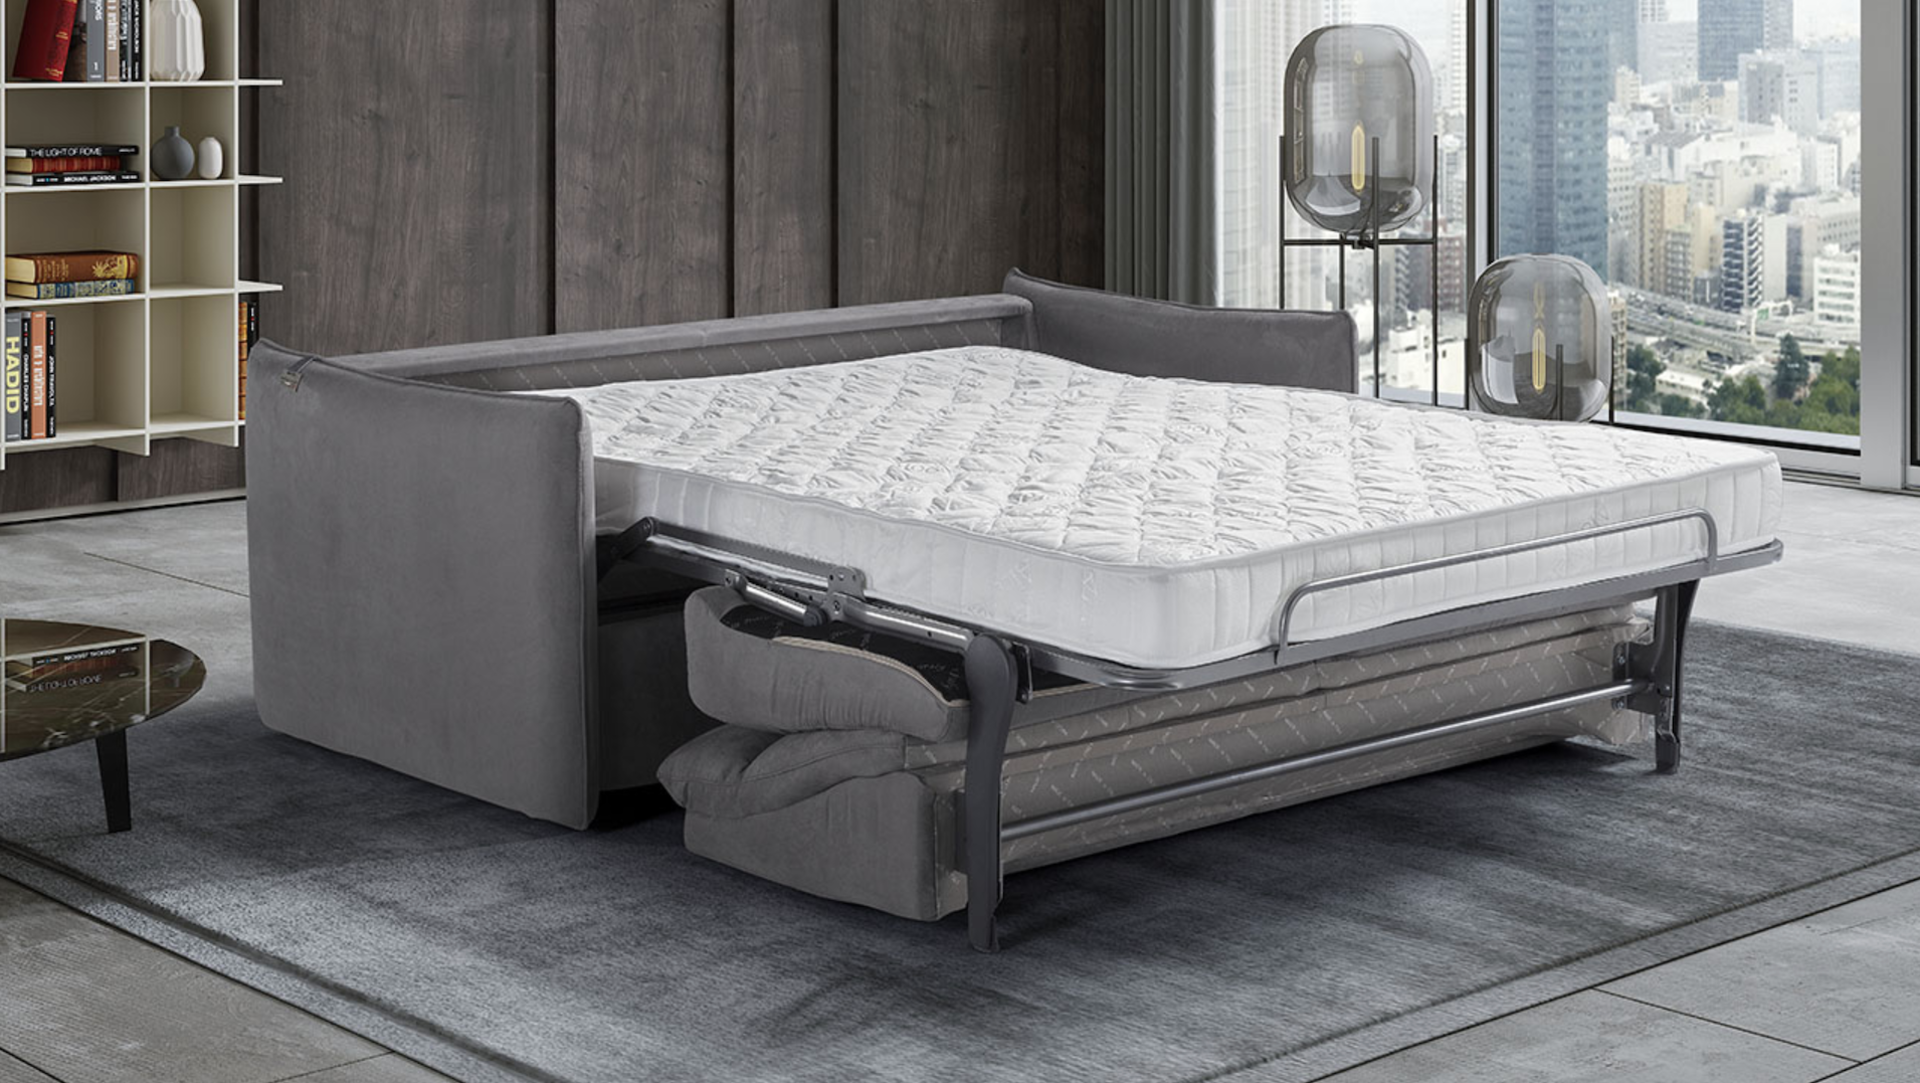 'AIMEE' Italian Crafted 3 Seat Sofa Bed in PLAZA SILVER RRP £1979 - Image 4 of 5